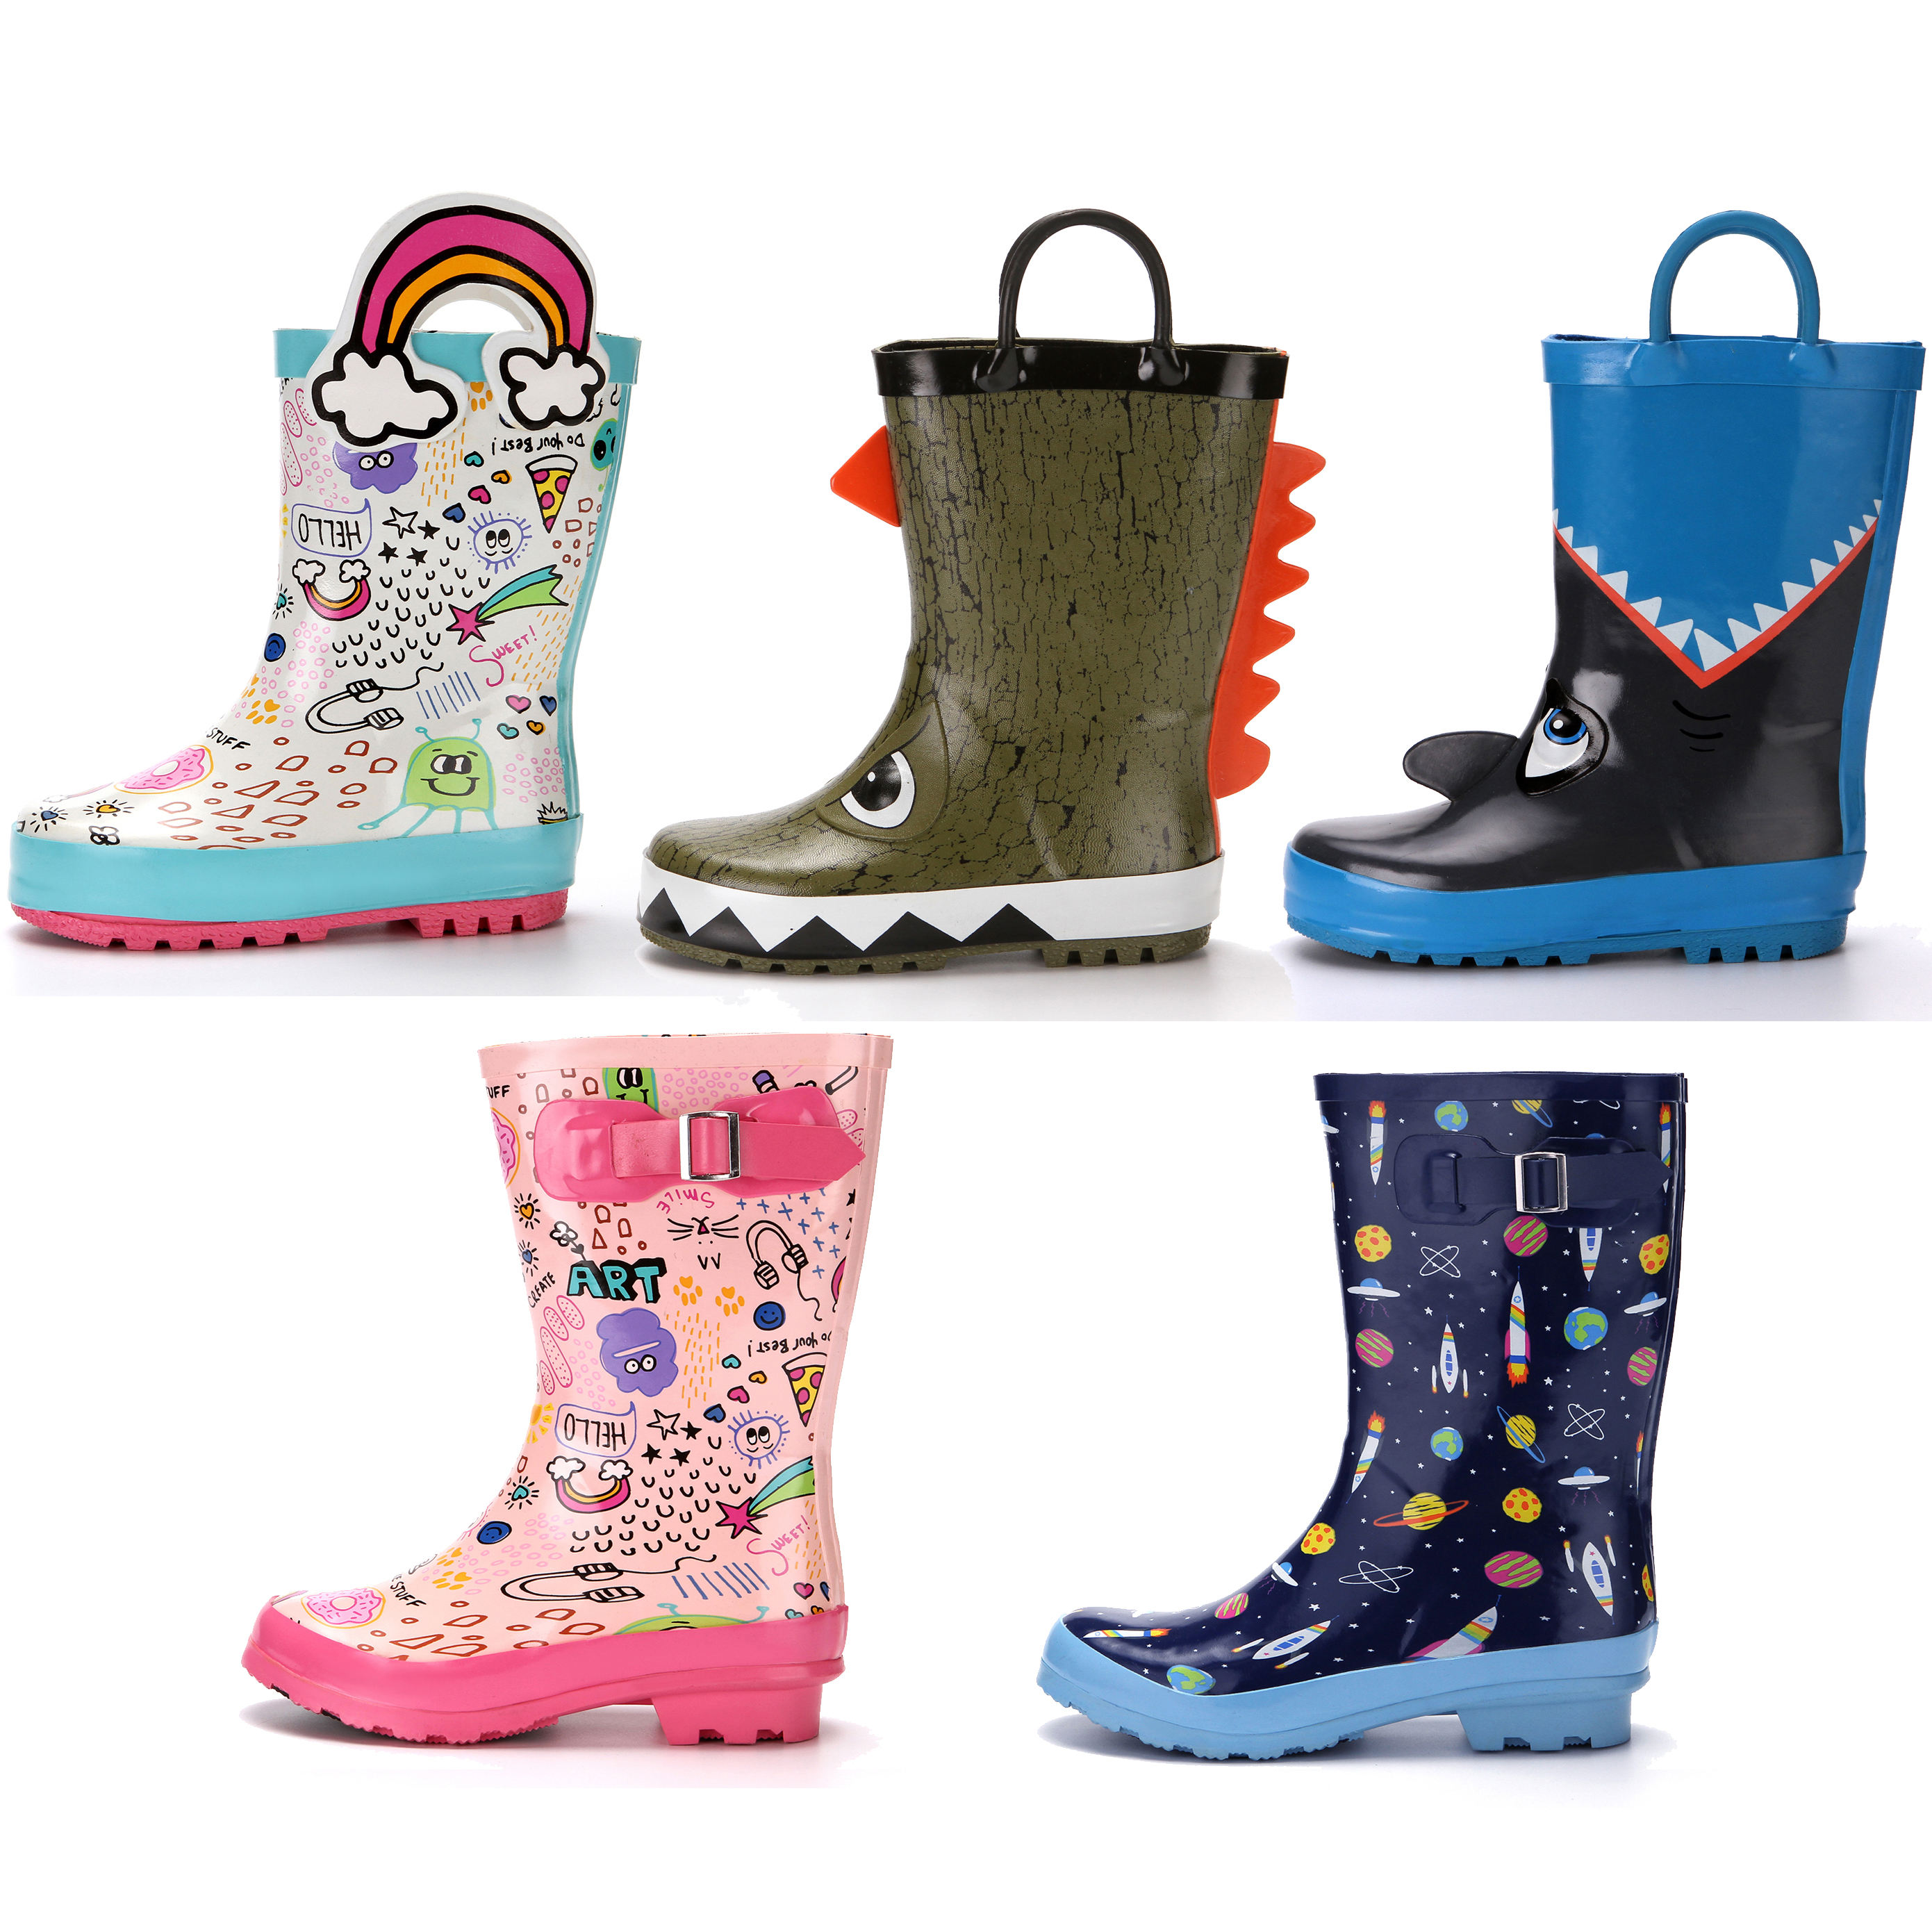 Cheap卸売CuteサメワニKids Garden Shoes Toddler/Little Kids/Big Kids Rubber Waterproof Rain Boots少年少女のため